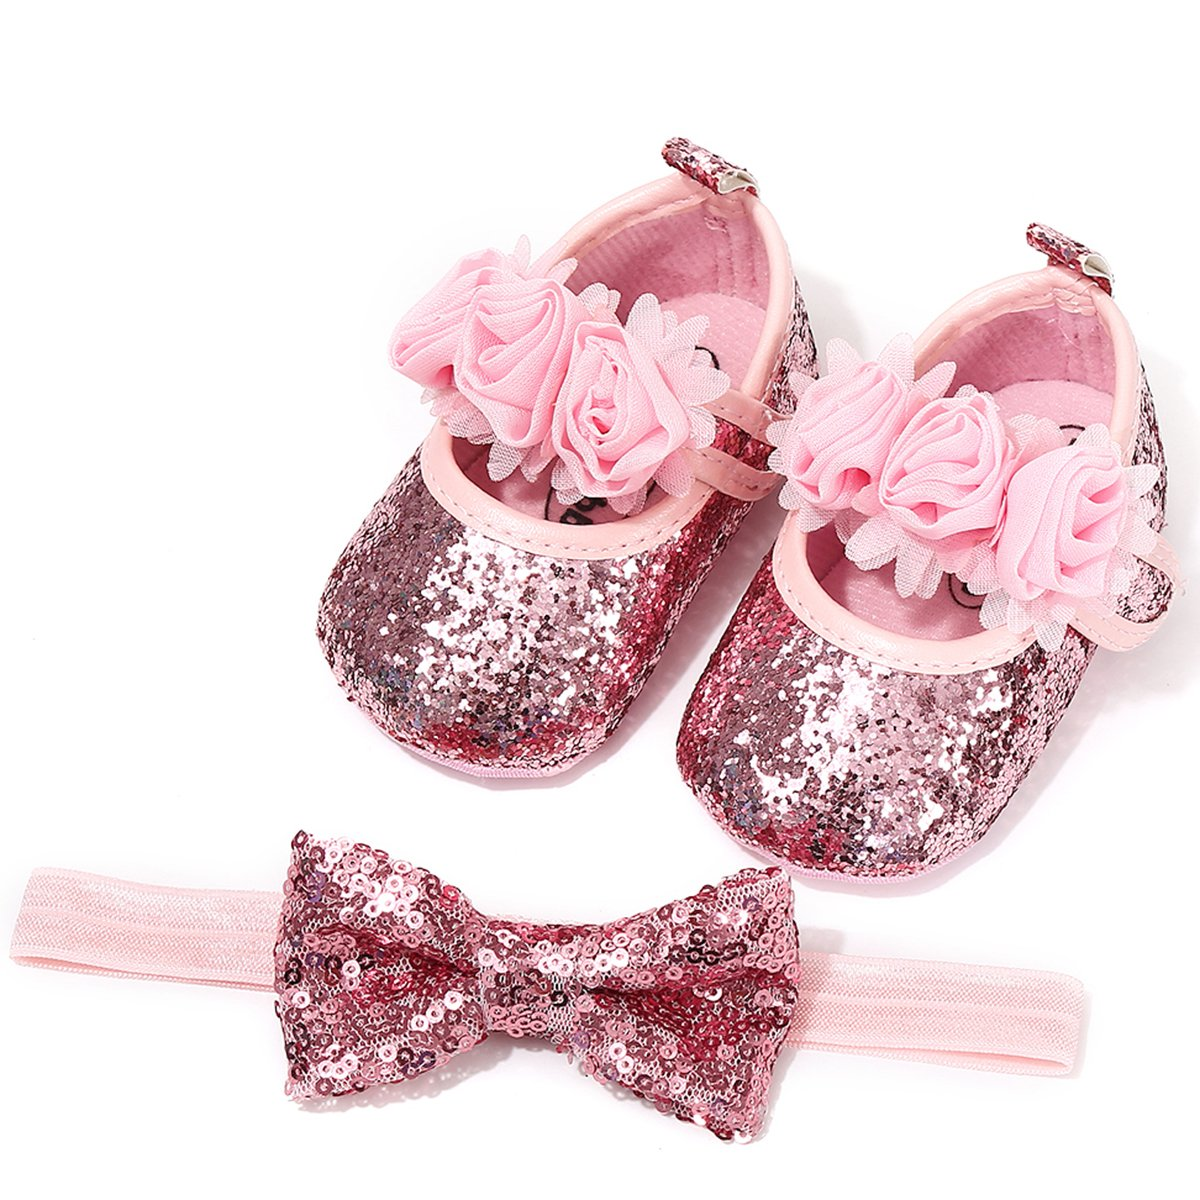 LIVEBOX Baby Infant Girls Shoes, Soft Sole Prewalker Mary Jane Princess Dress Crib Shoes with Free Baby Headband for Attend Wedding Birthday Party Events (Pink, M)